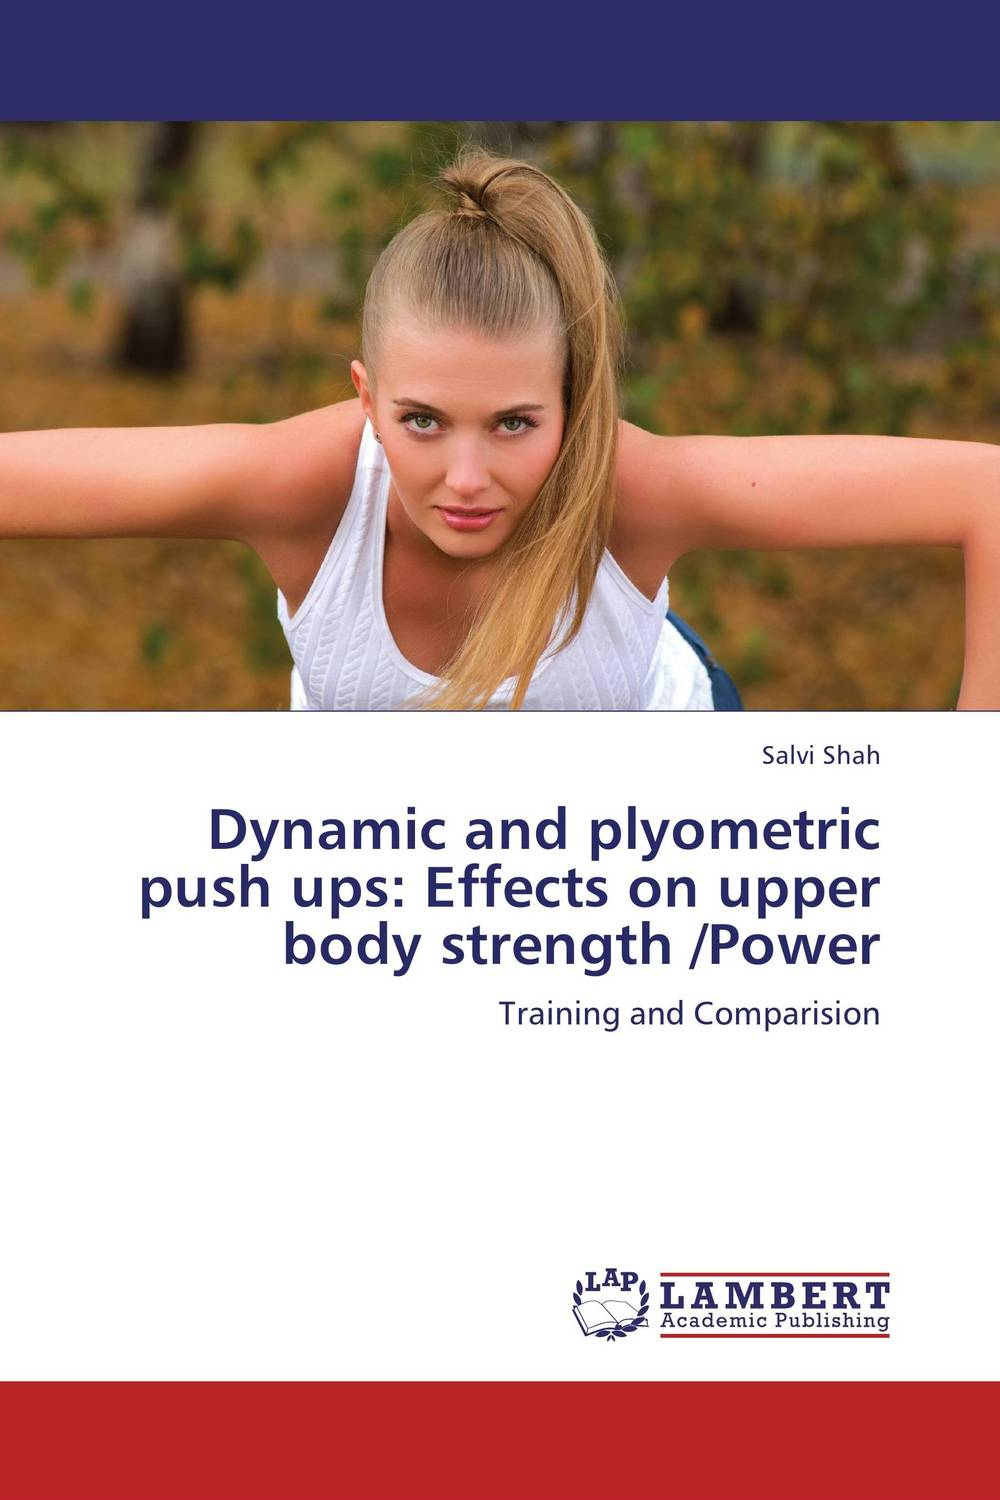 Dynamic and plyometric push ups: Effects on upper body strength /Power treatment effects on microtensile bond strength of repaired composite